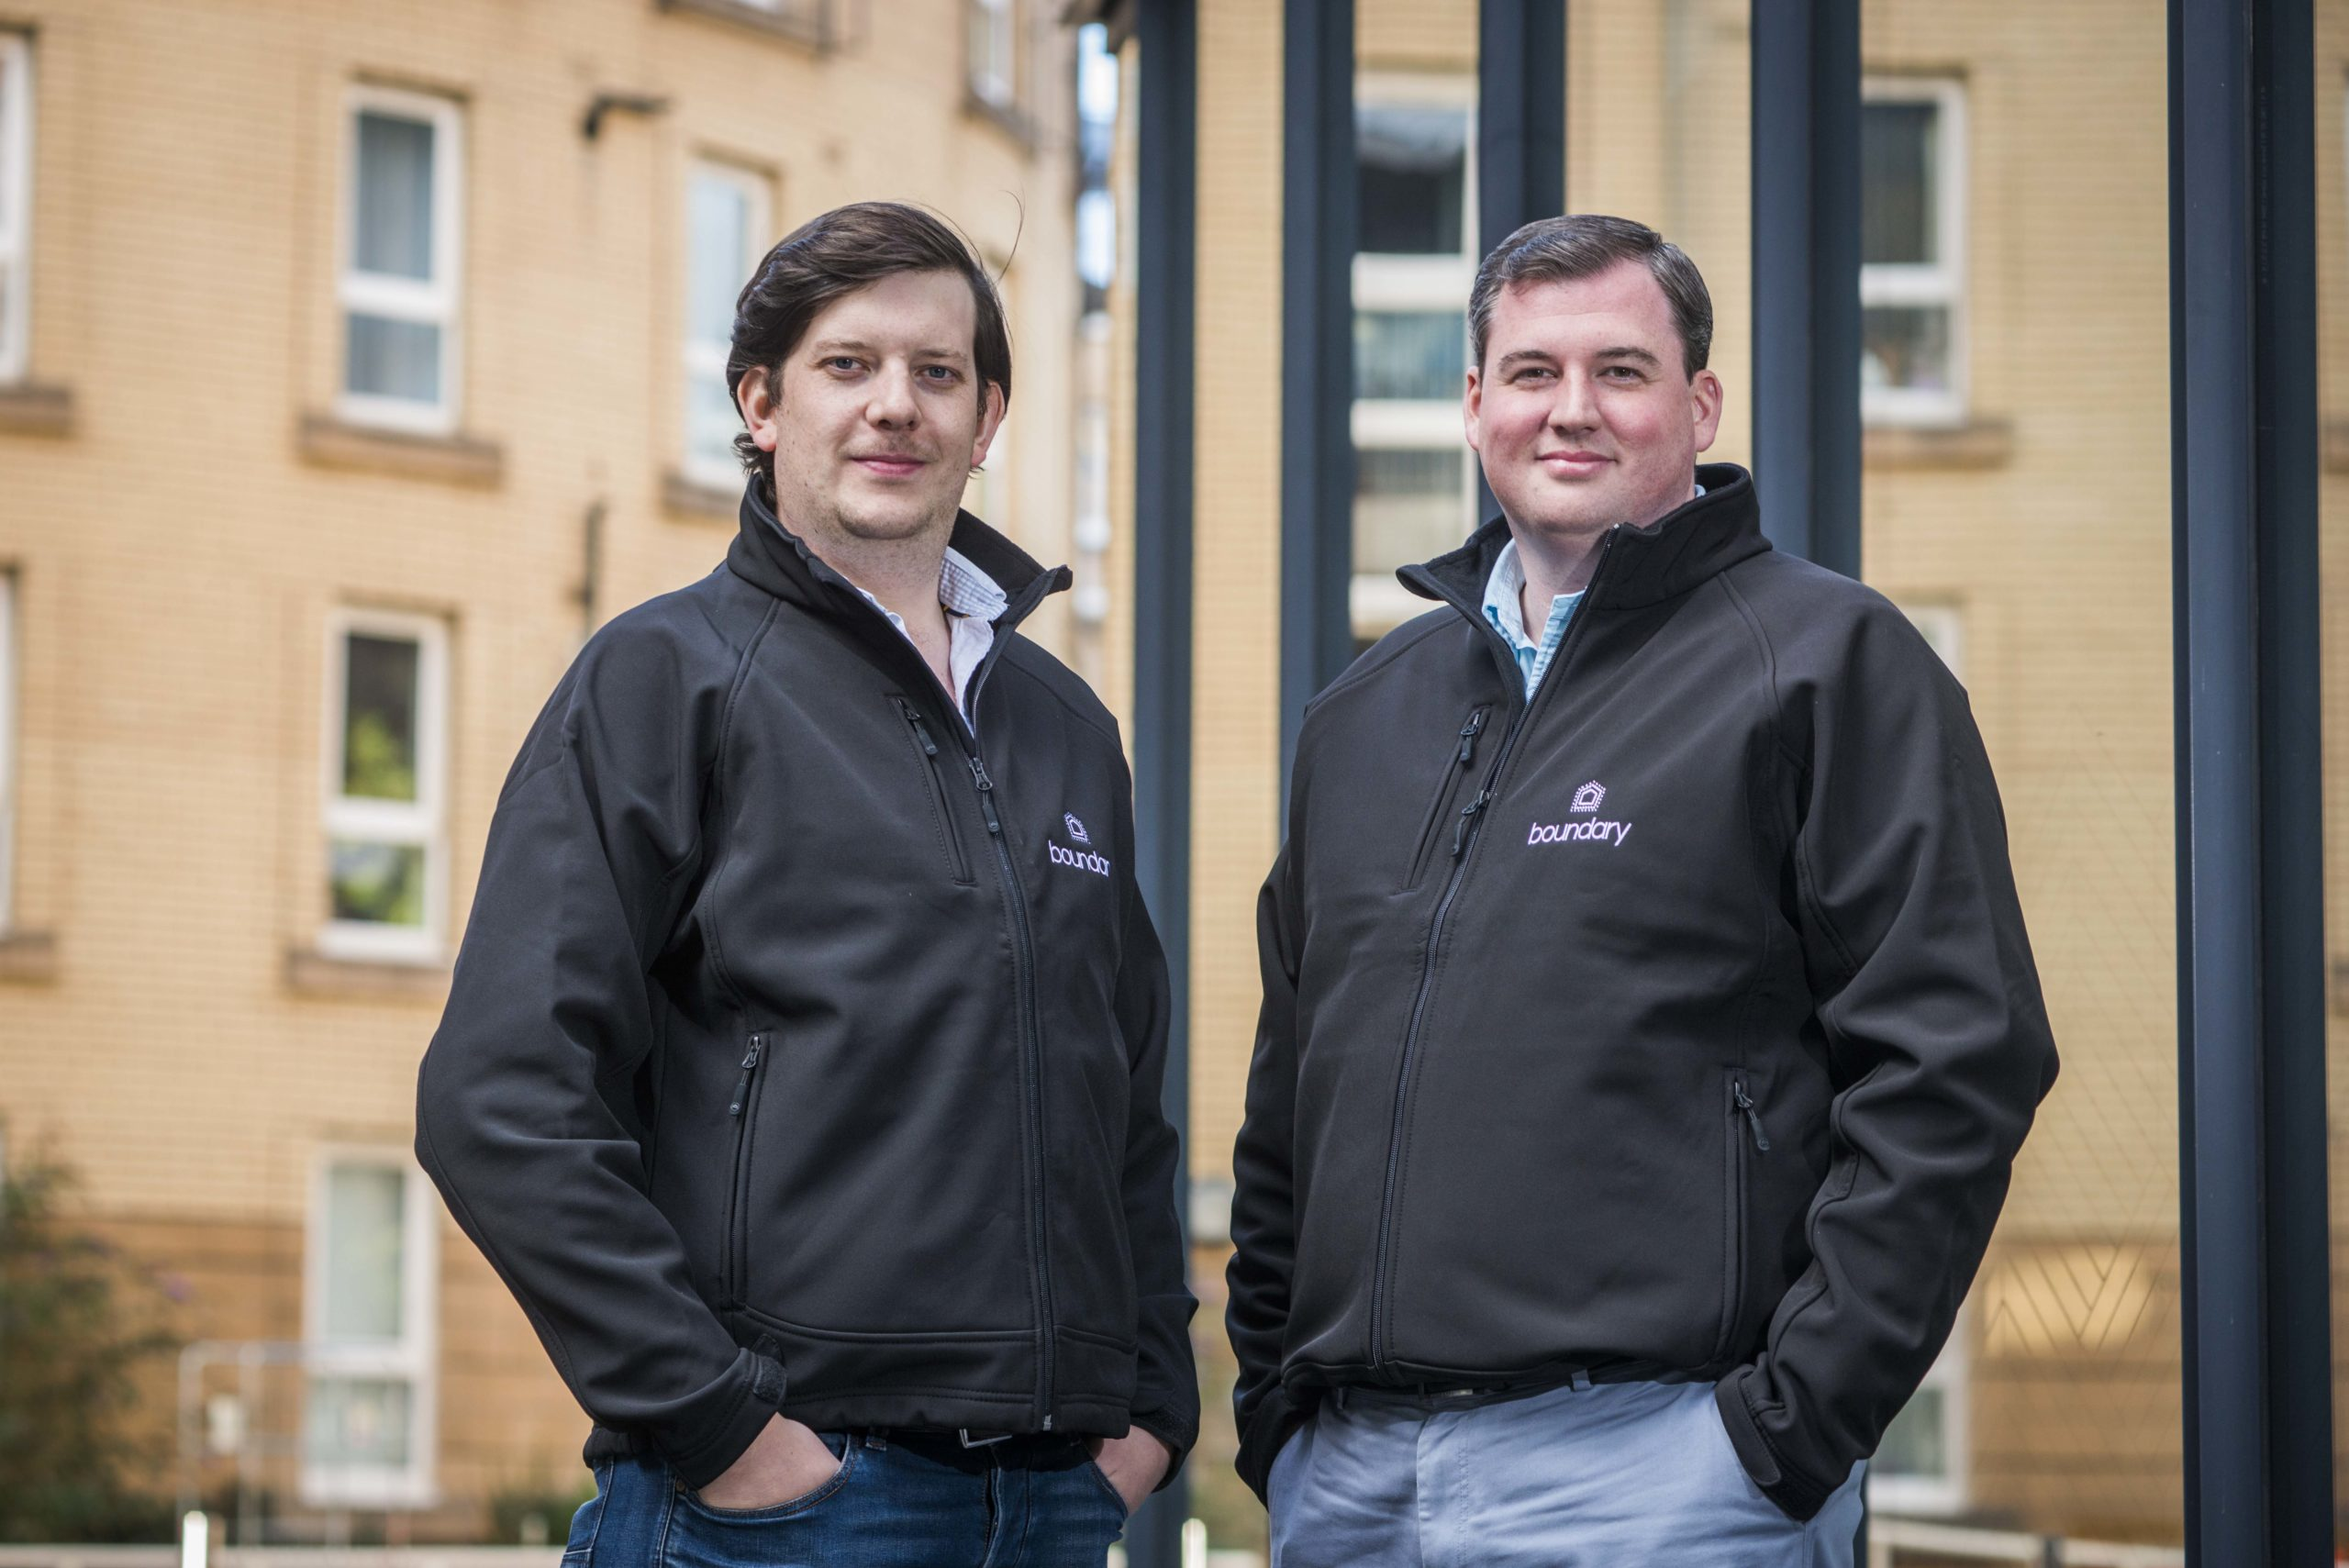 Boundary co-founders, Paul Walton and Robin Knox